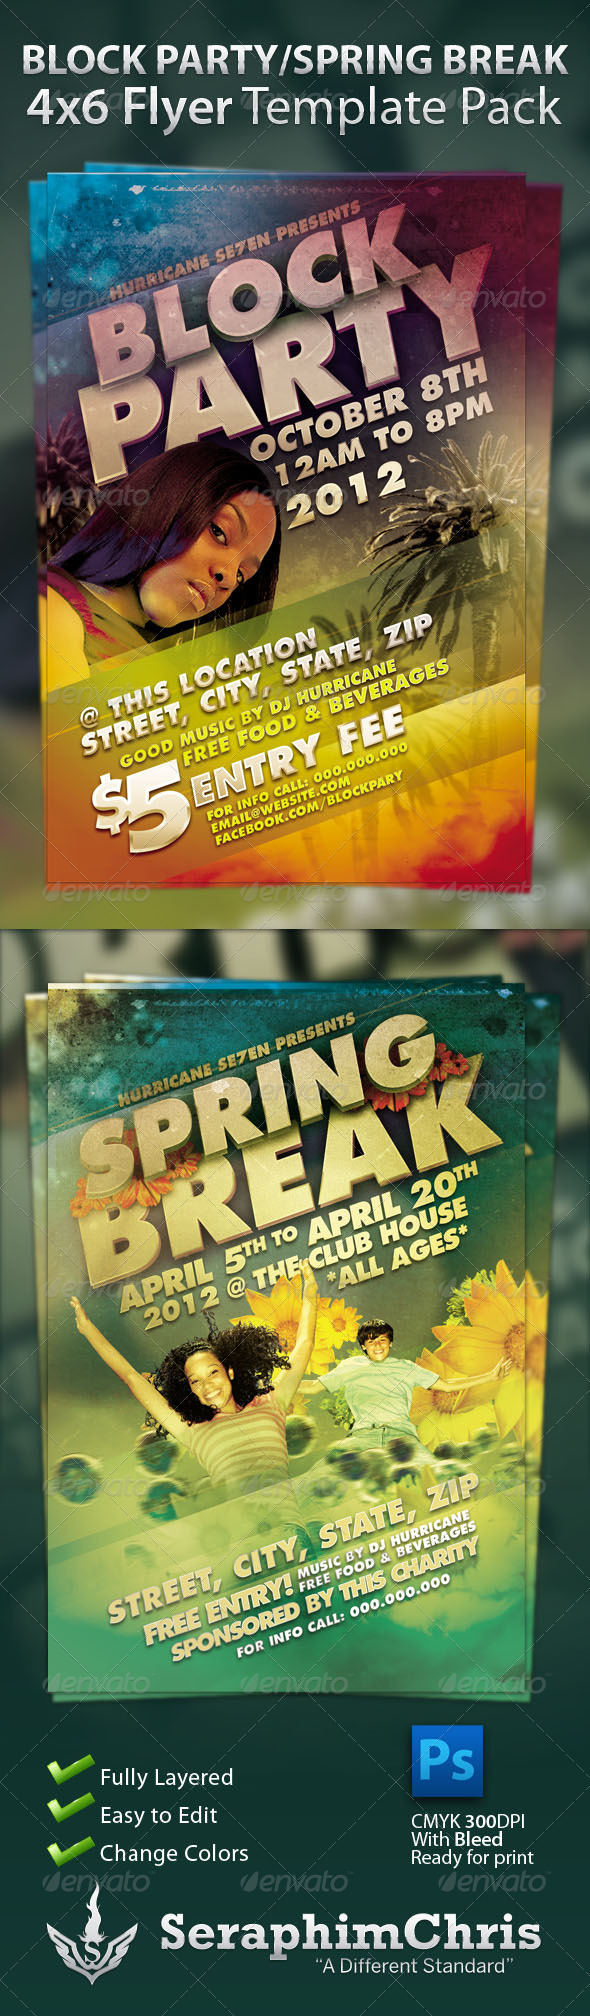 Block party and spring break flyer template pack by for Block party template flyers free